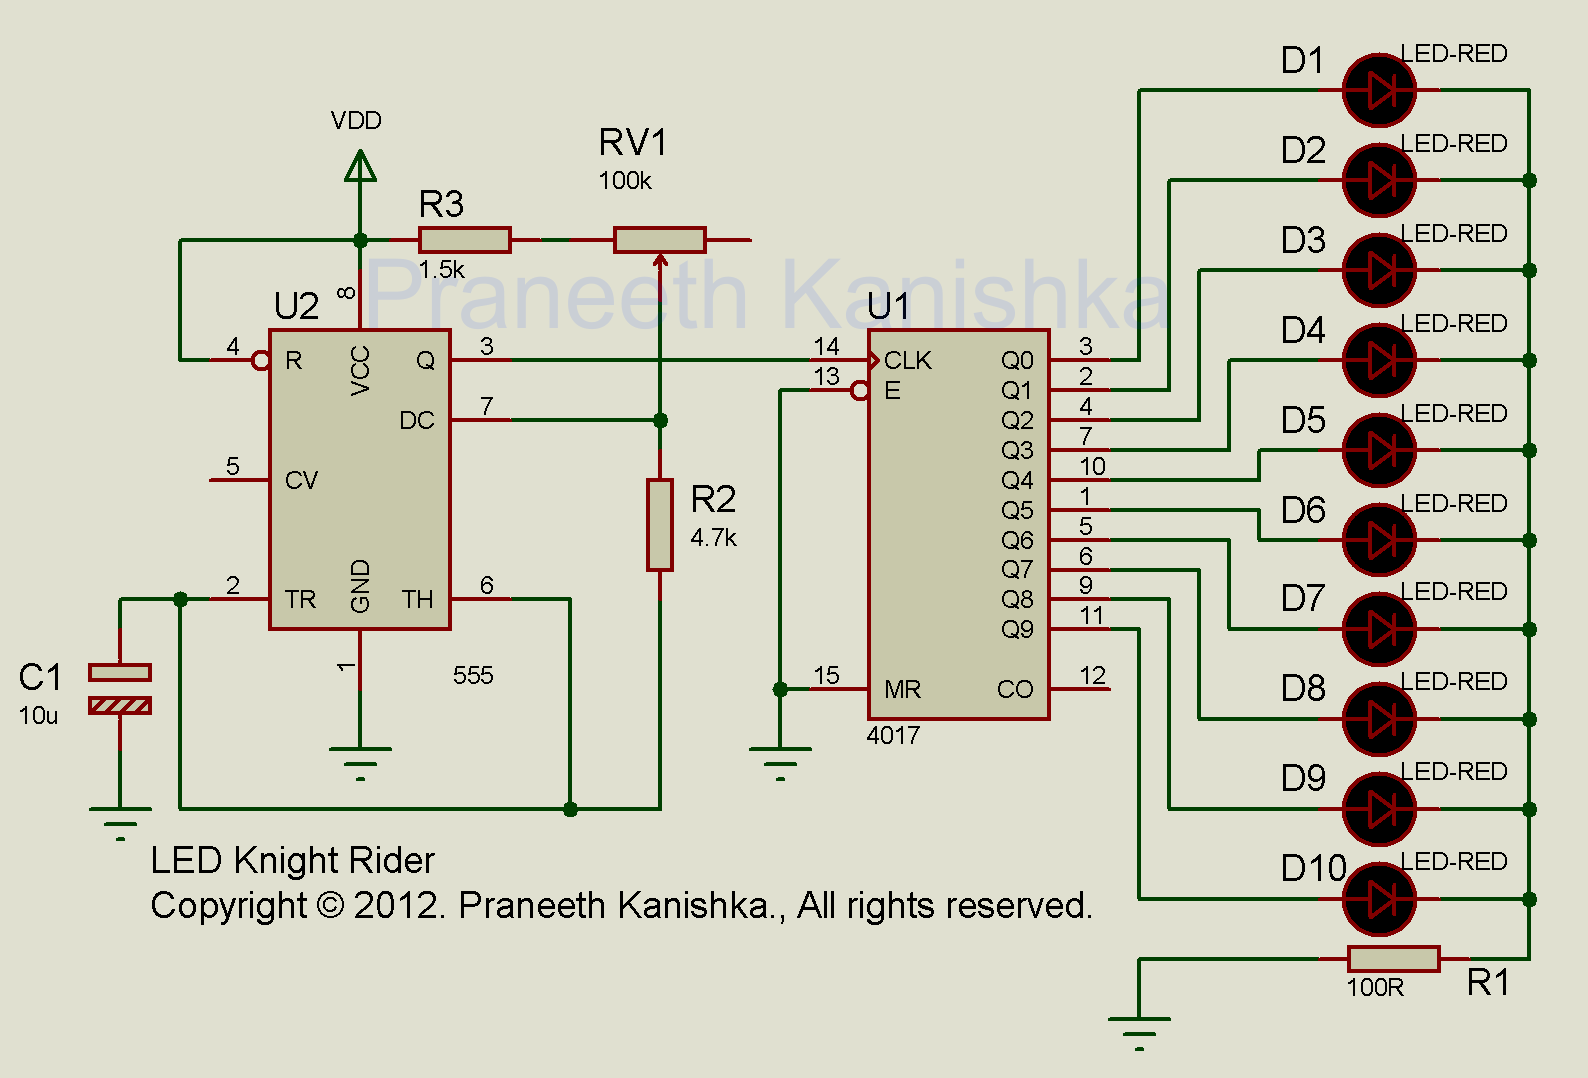 Circuit Diagram Knight Rider Lights Wiring Library Lampu Led Libraryknight Circuits 1